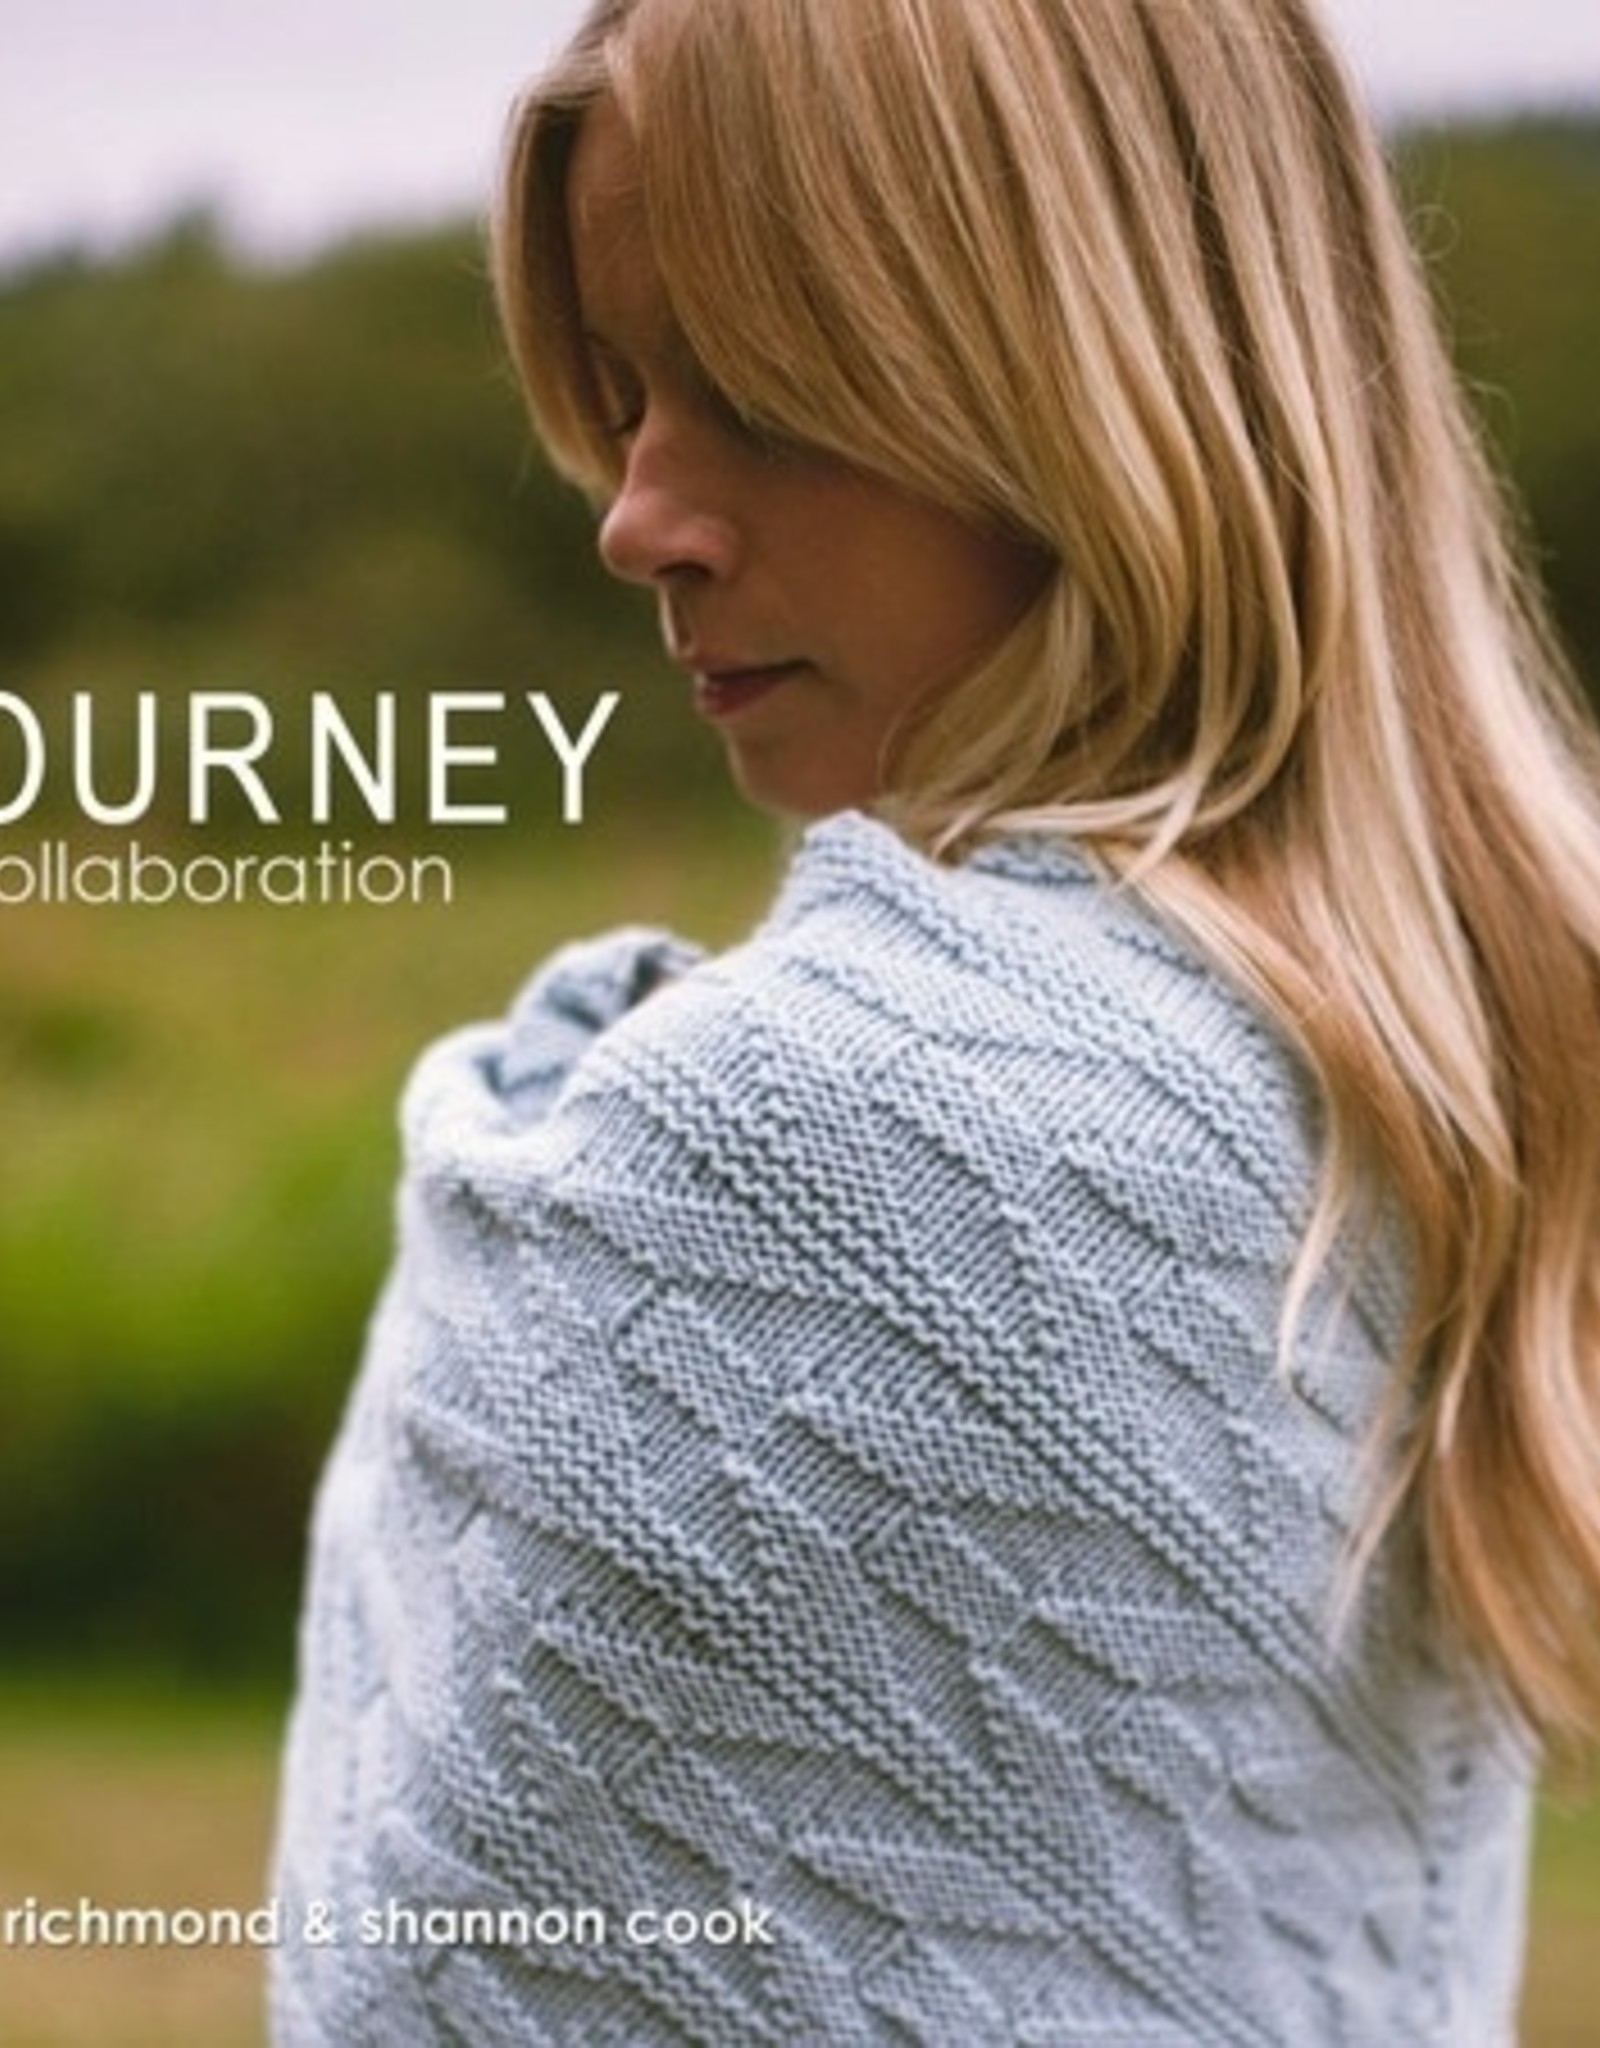 Marian Rae Publications Journey by Jane Richmond  & Shannon Cook